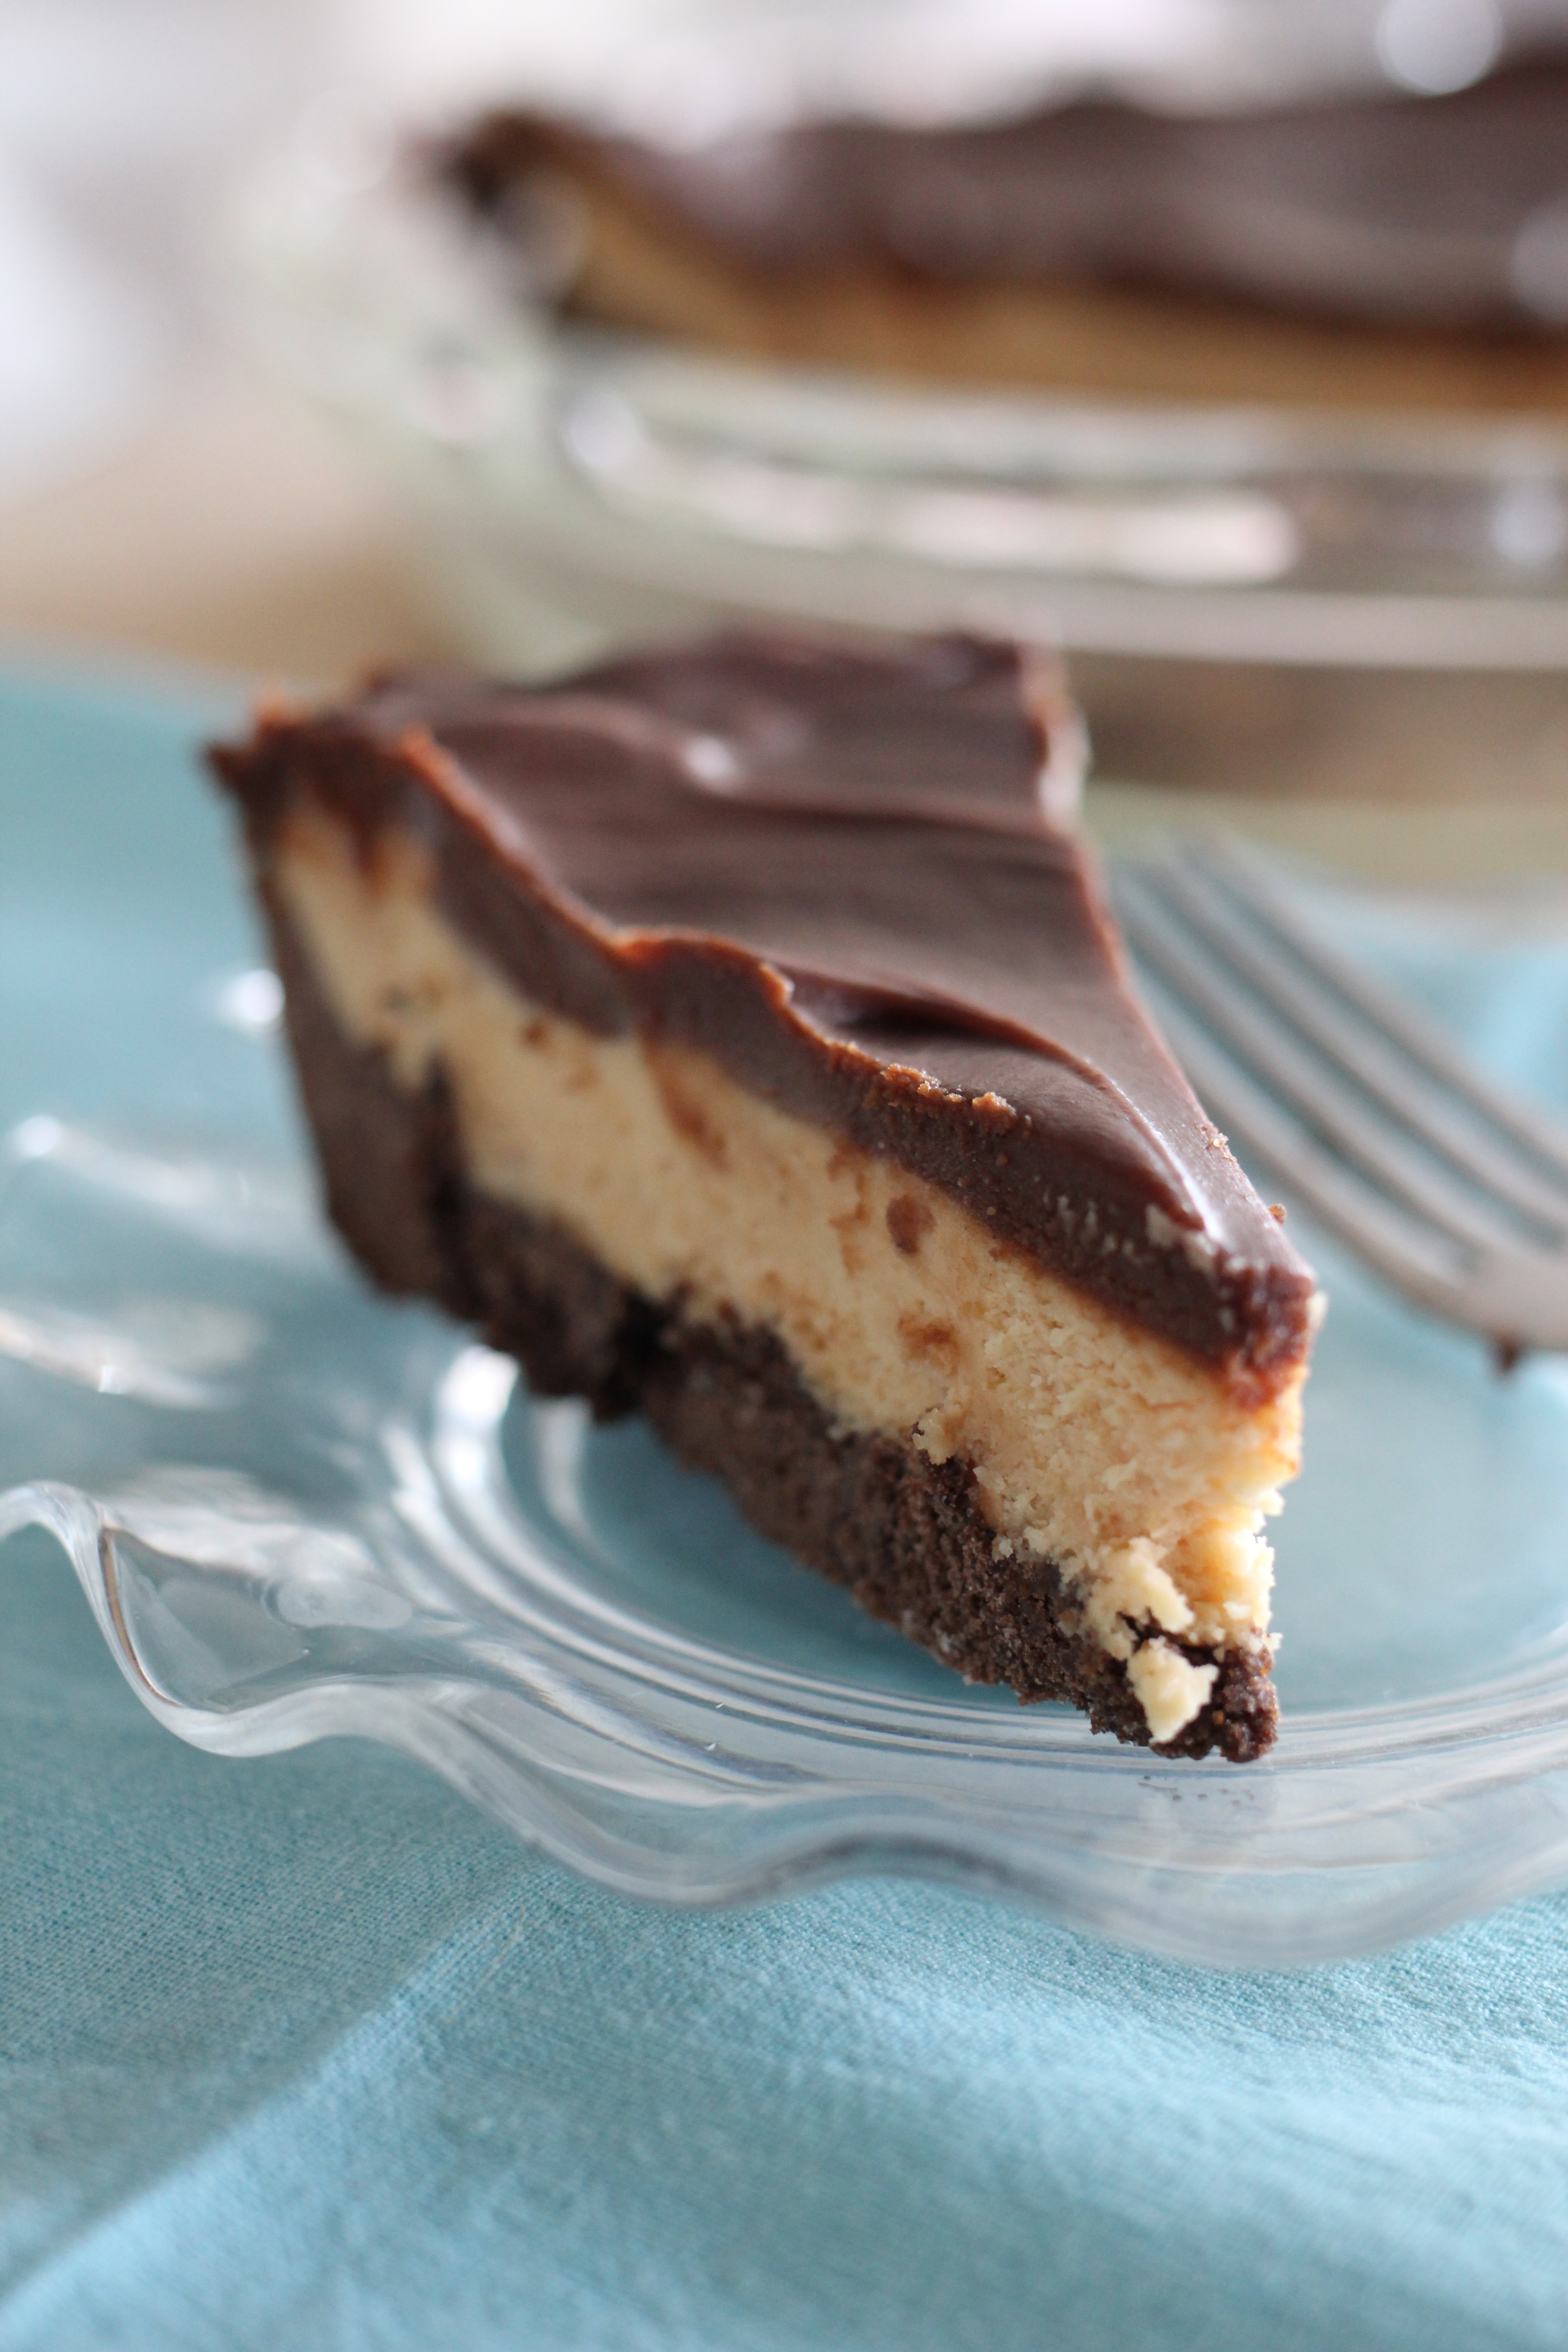 Southern Peanut Butter Pie with Homemade Fudge Topping